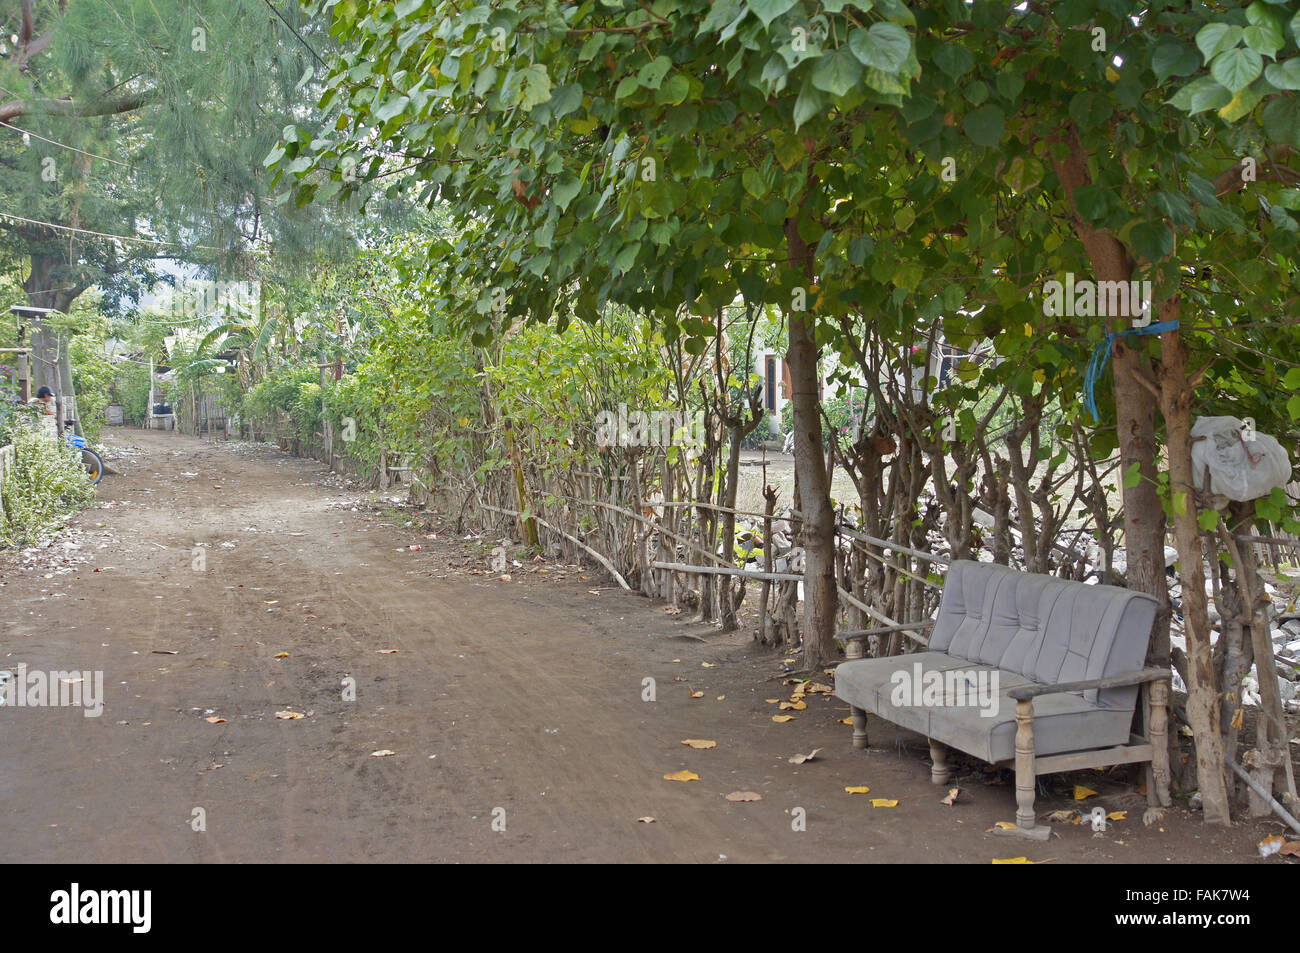 Sofa on the street on a still undeveloped Gili Islands, Indonesia - Stock Image